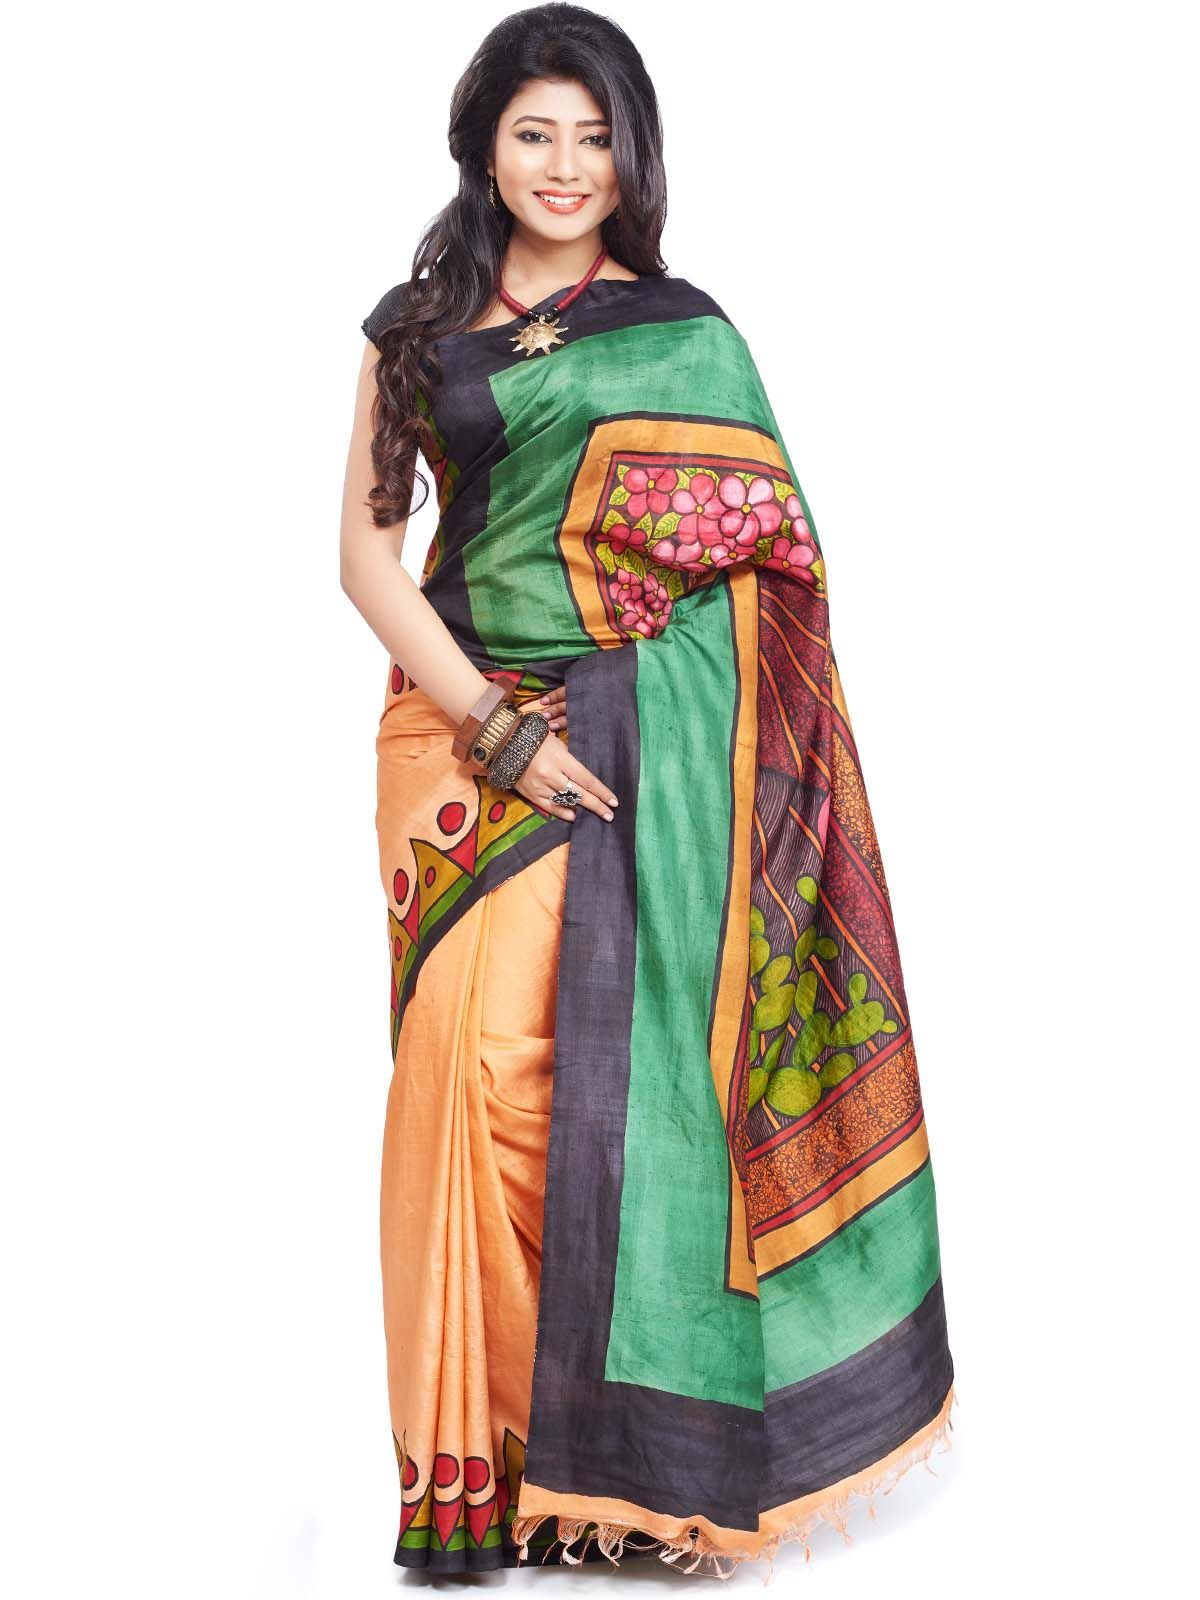 Best saree collection with wide variety of designs. Simple and rich look sarees